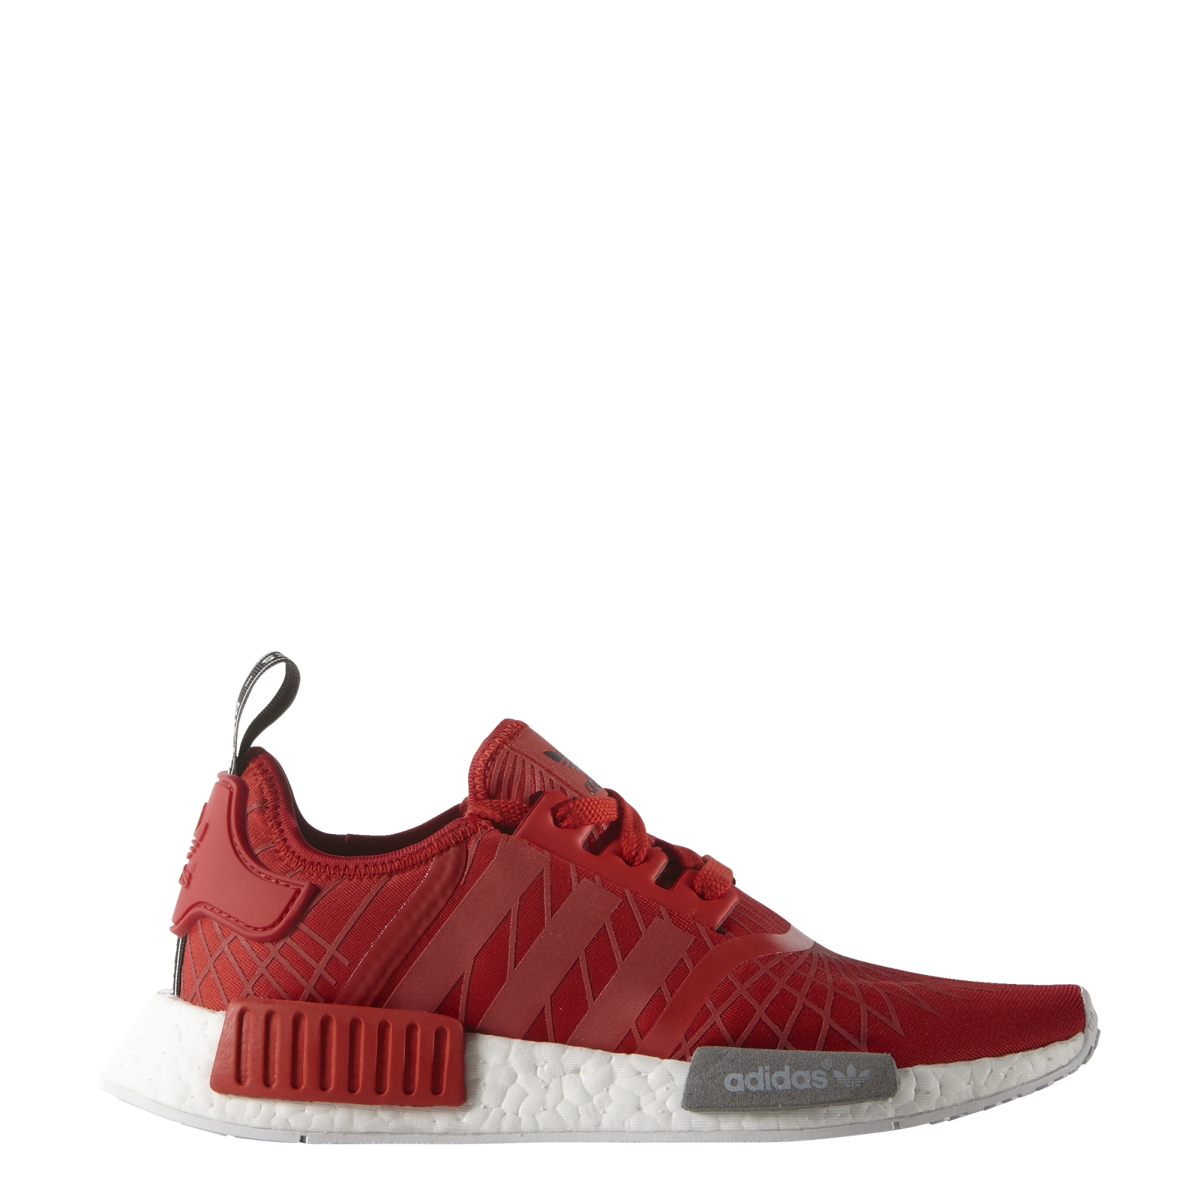 size 40 b66f5 28a62 Adidas NMD R1 Lush Red Spider Maze Shoes - s79385